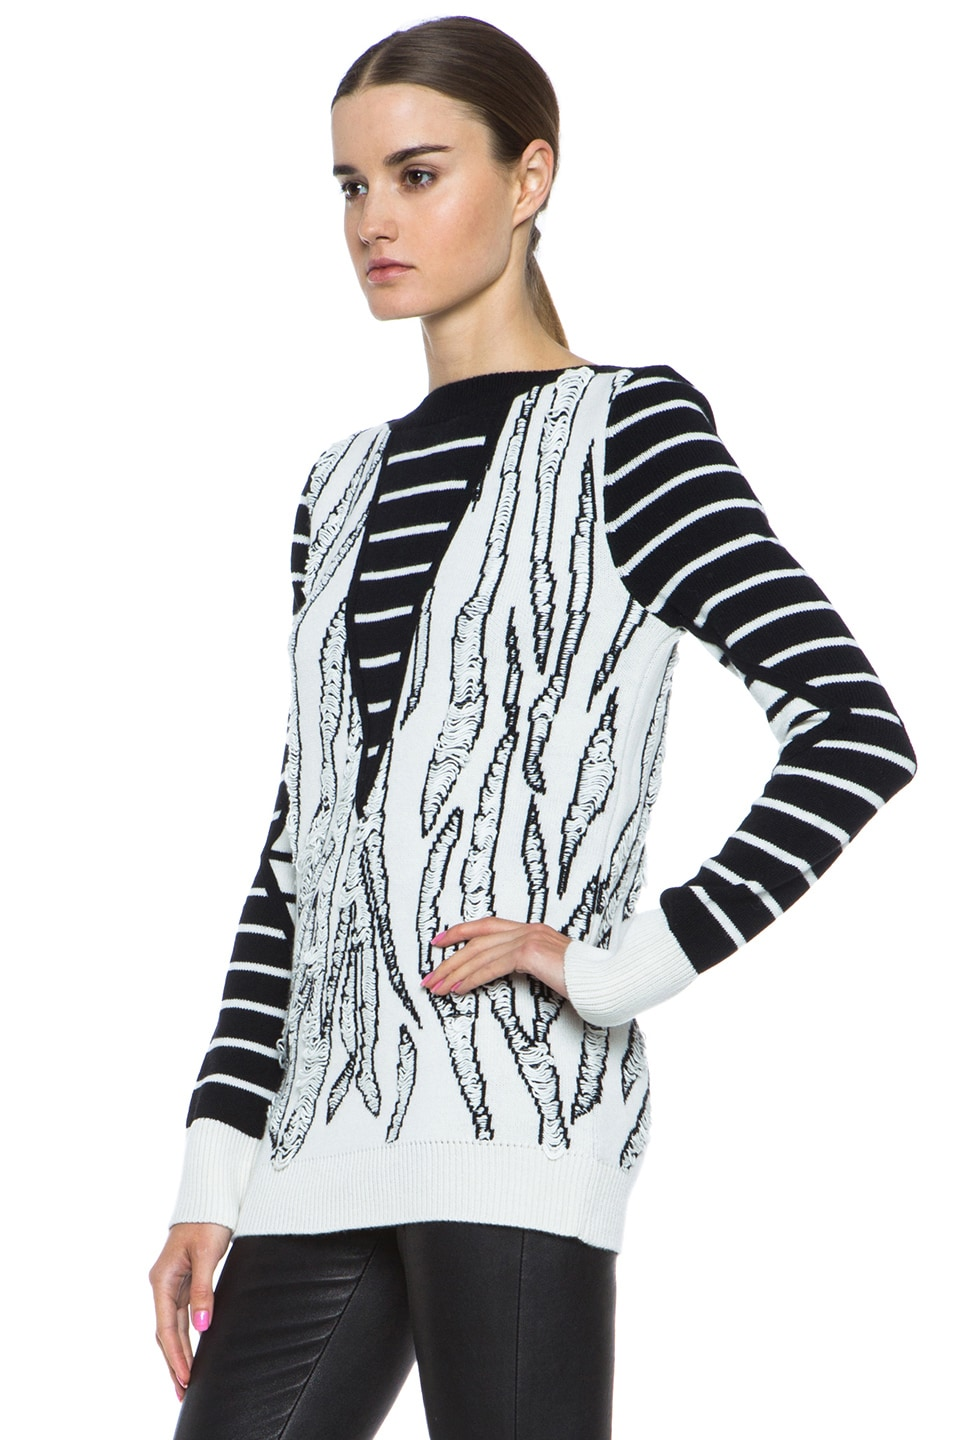 Image 2 of McQ Alexander McQueen Tiger Jacquard Float Stitch Sweater in Cream & Black